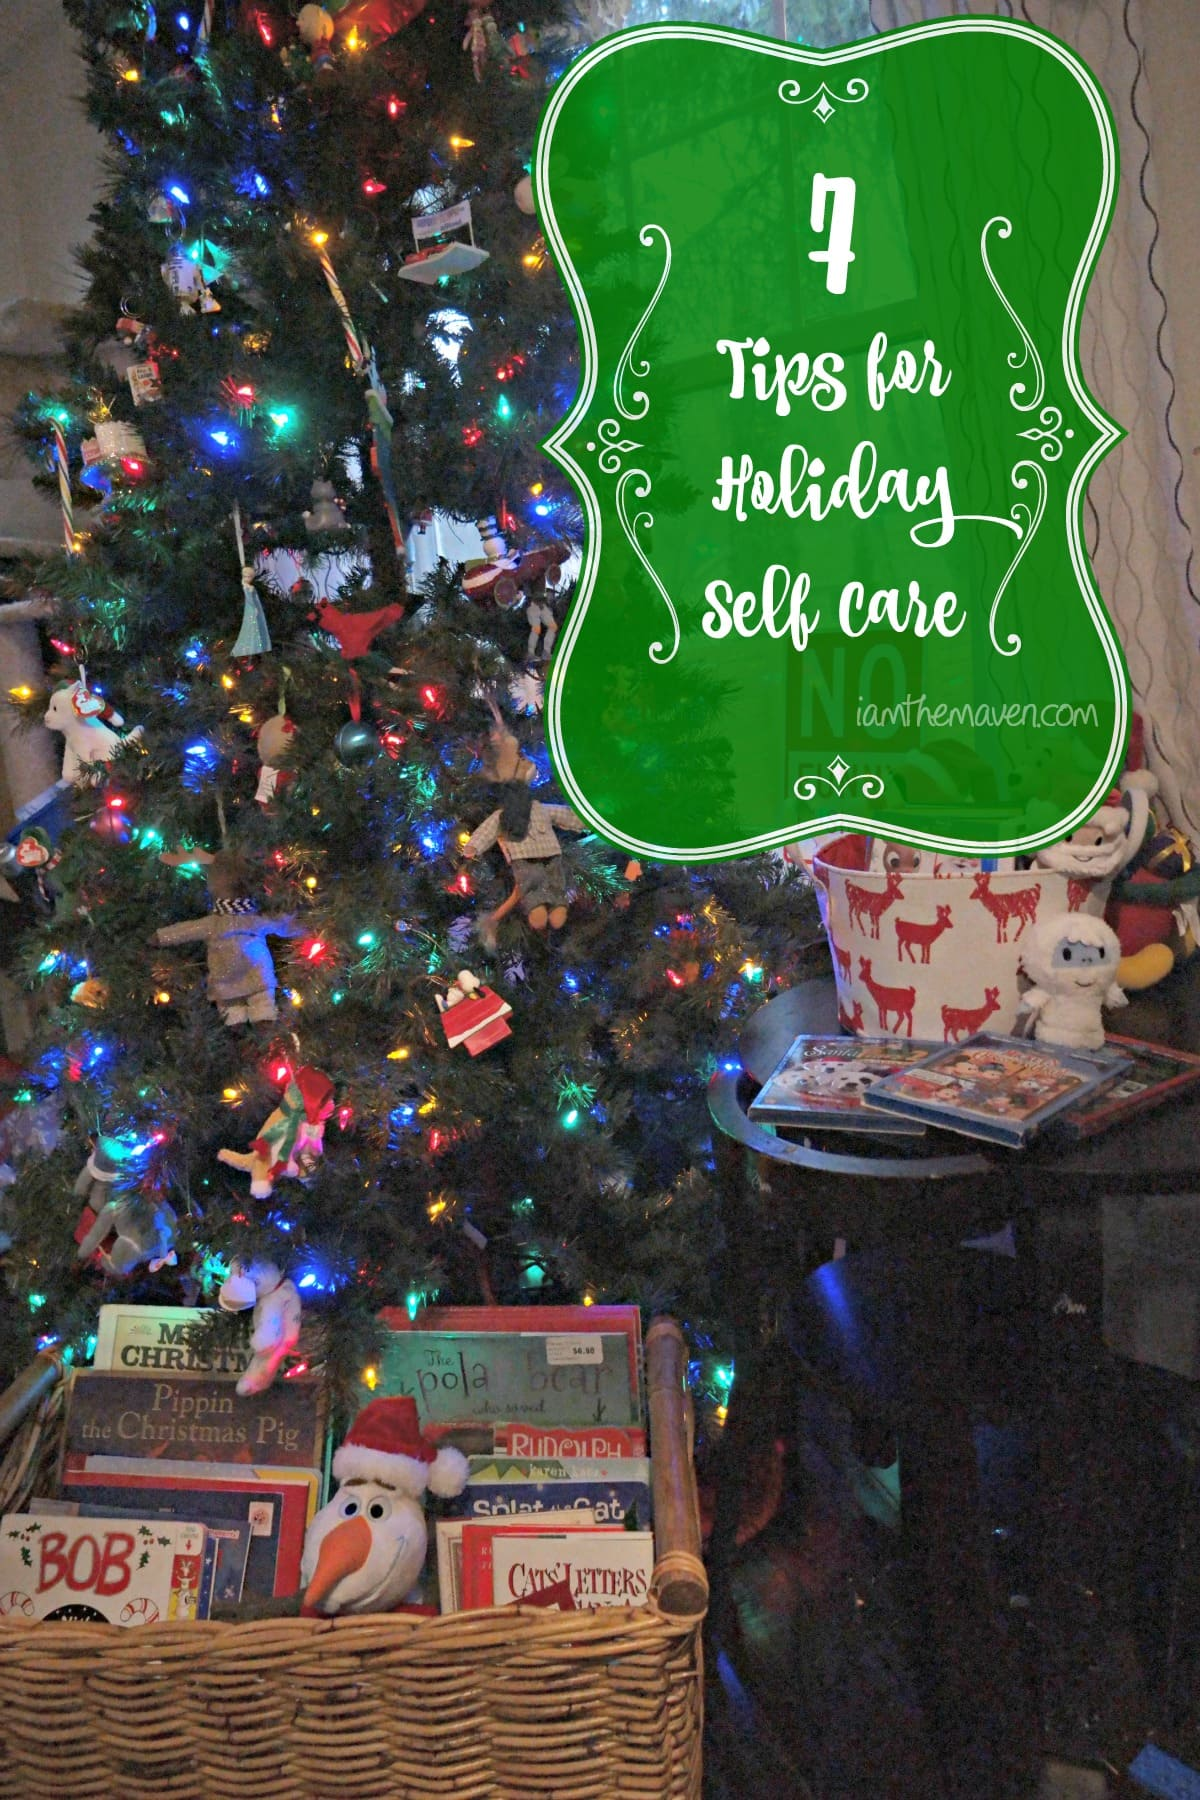 Don't let the holidays overwhelm you. Here are 7 steps for Holiday Self Care. #HolidayGlow AD